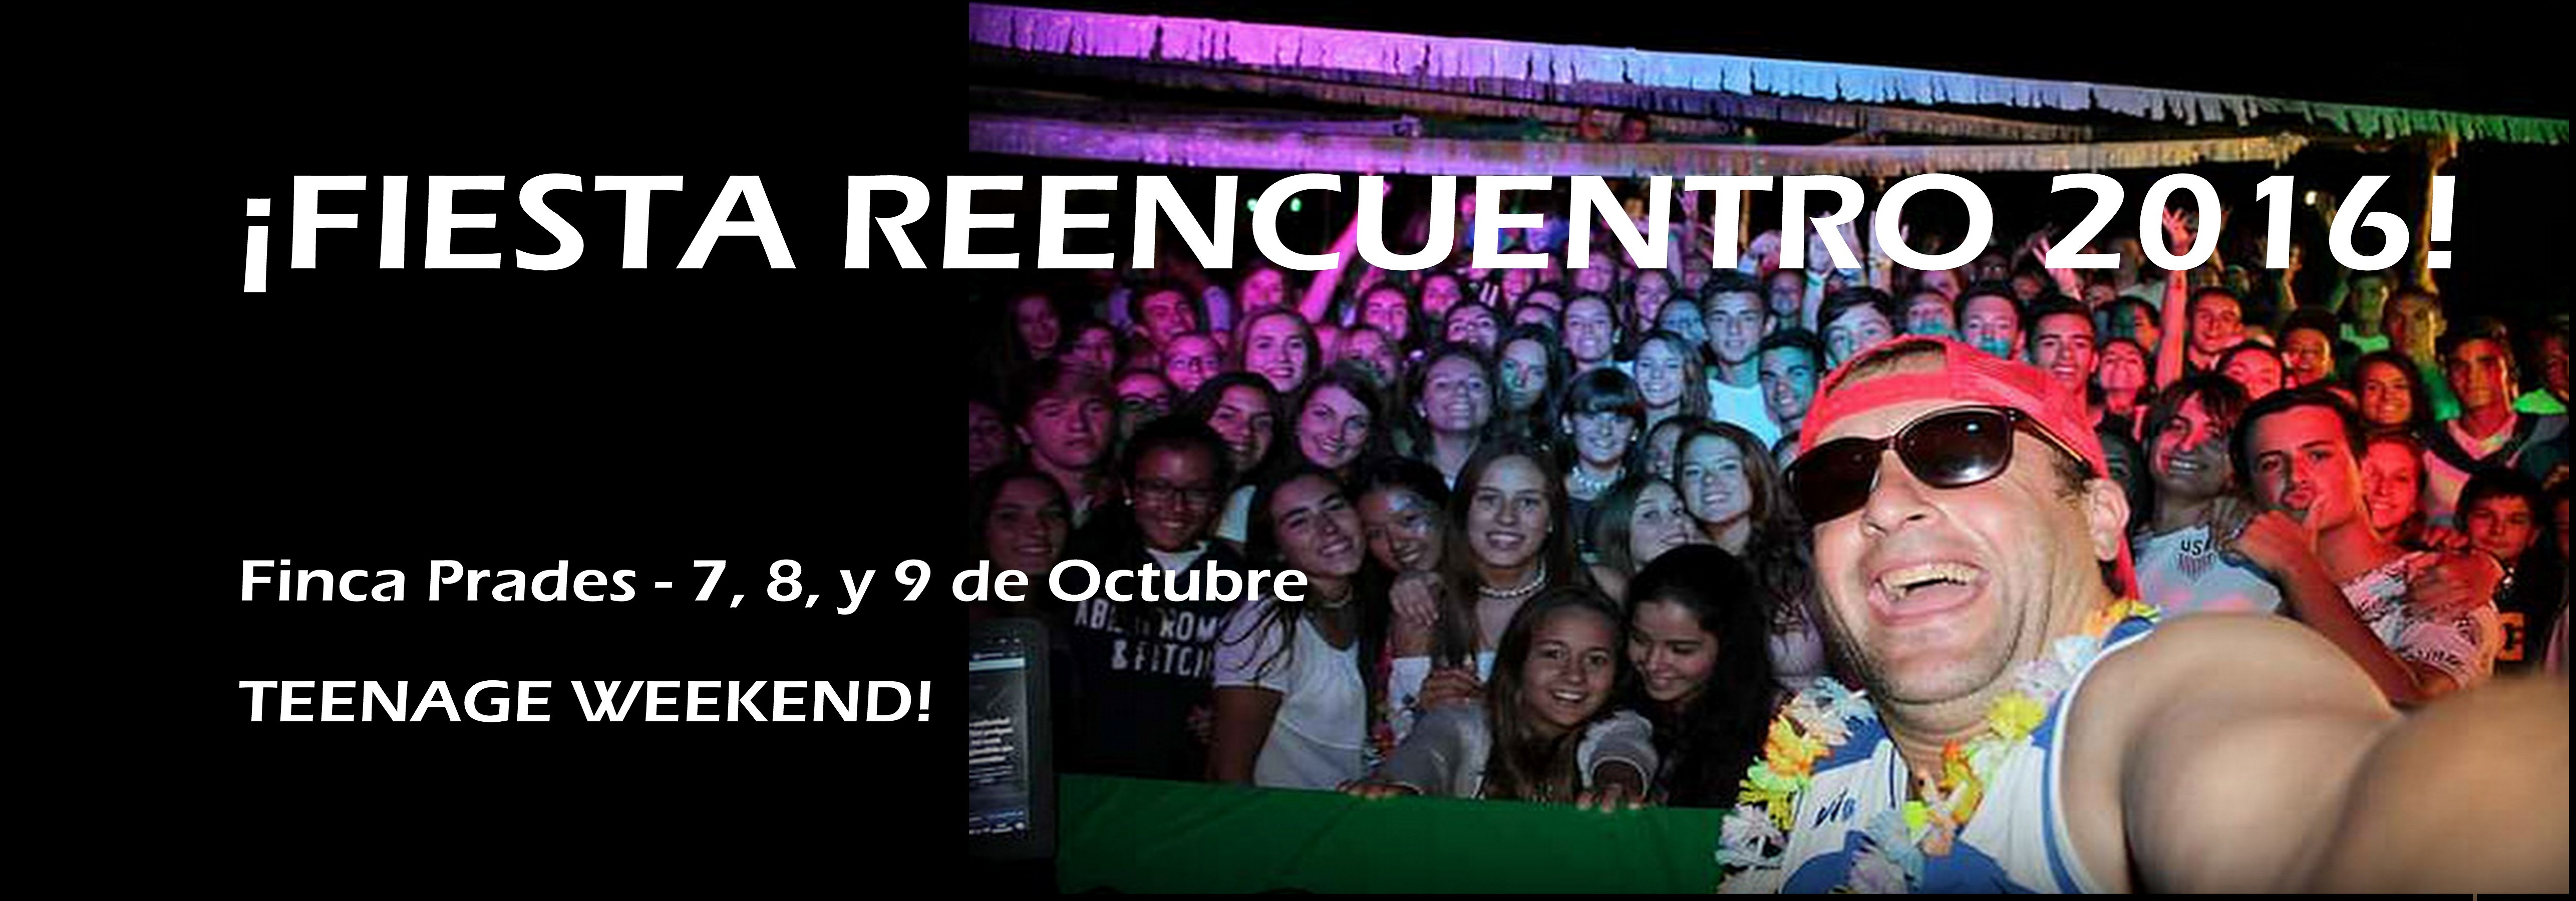 Banner web reencuentro